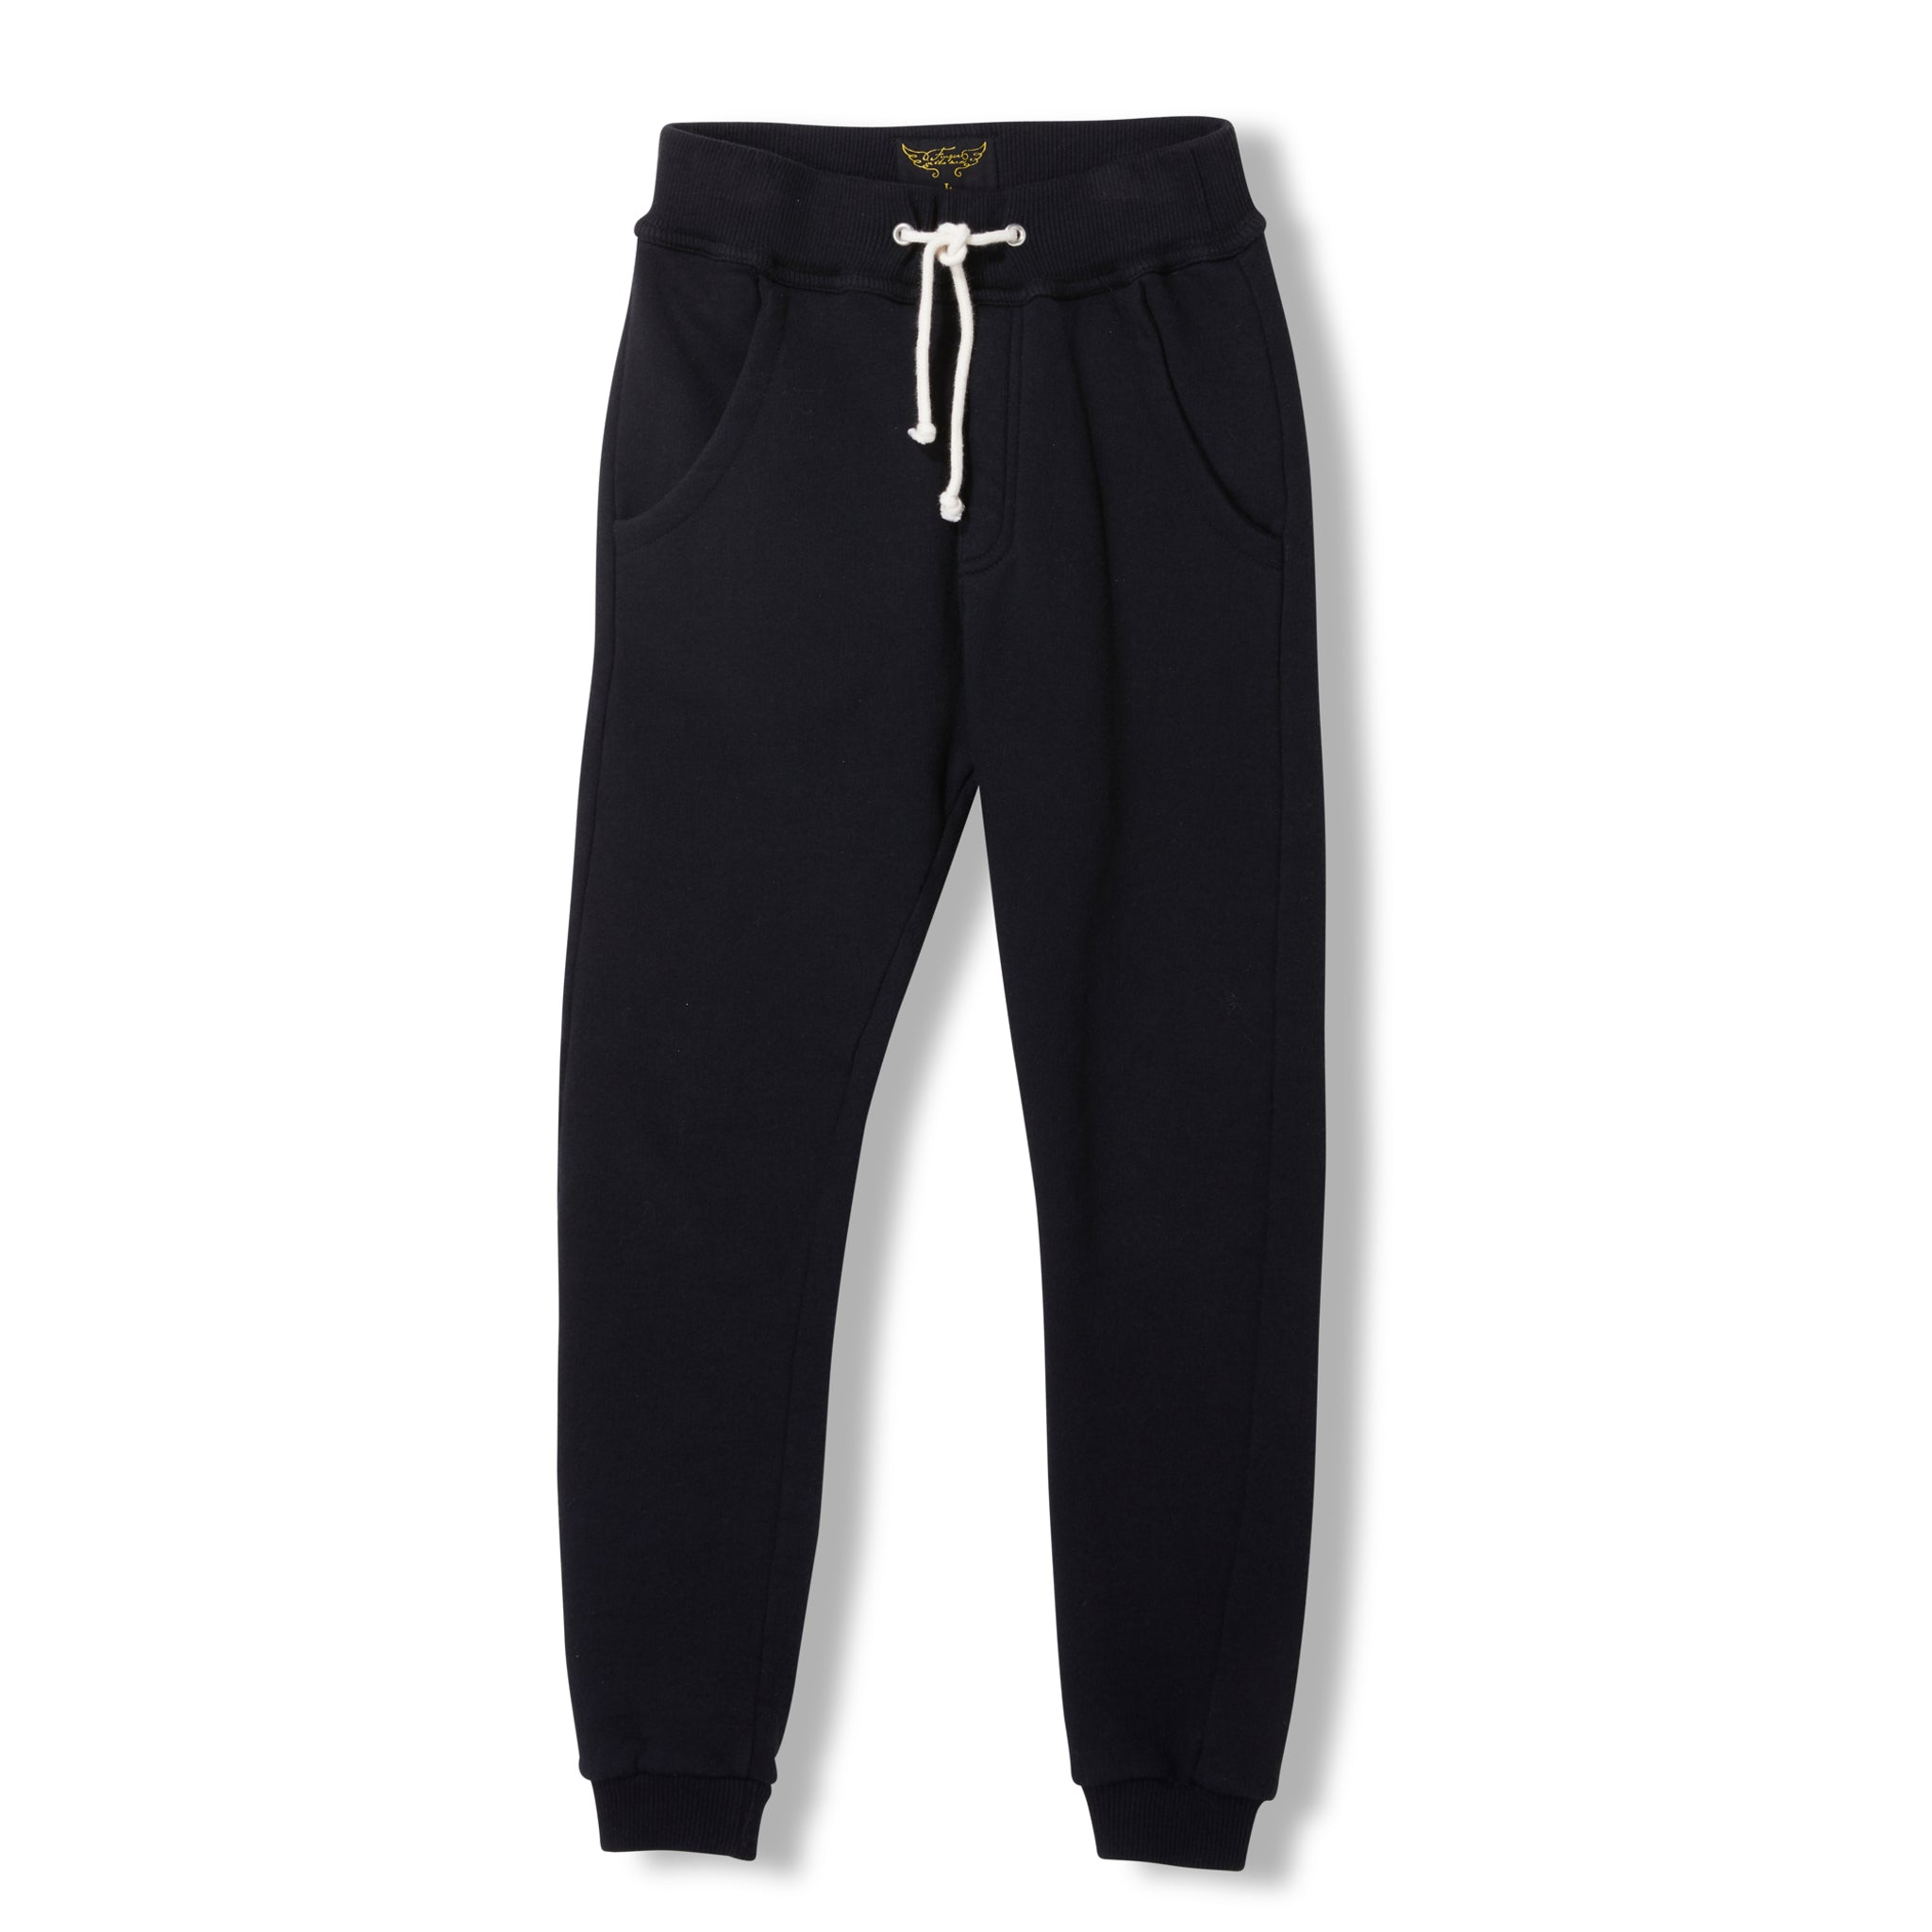 SPRINT Black -  Knitted Fleece Jogging Pant 1